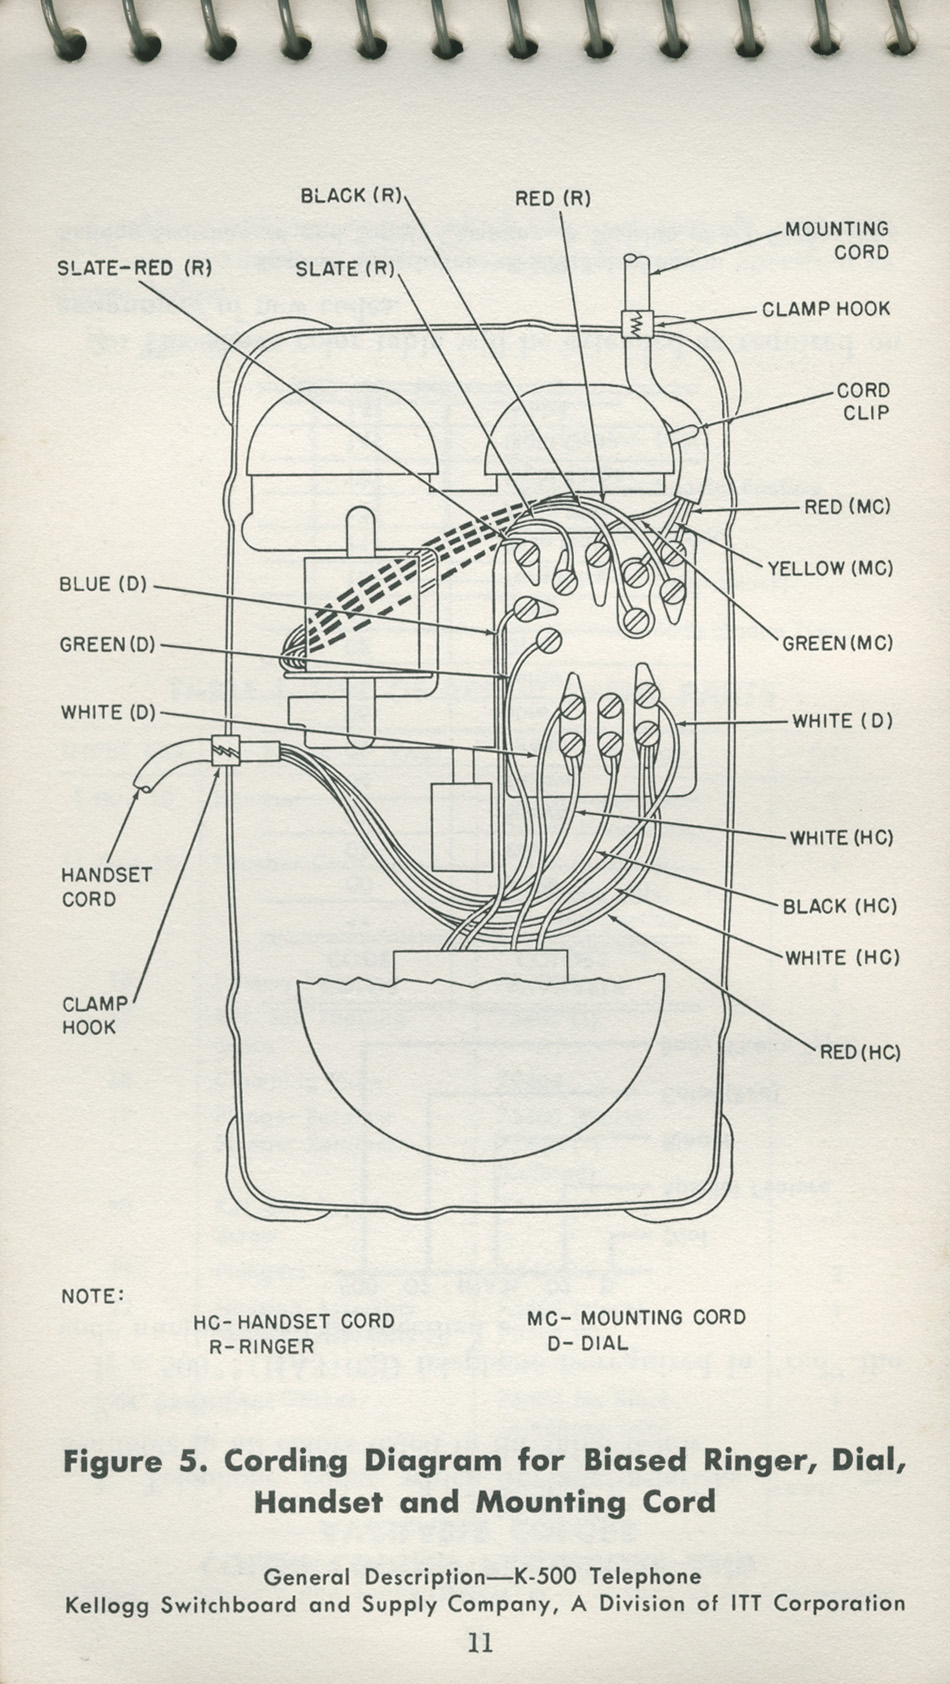 rotary dial telephone wiring diagram rj45 wall socket phone and electrical schematic candlestick 32 itt